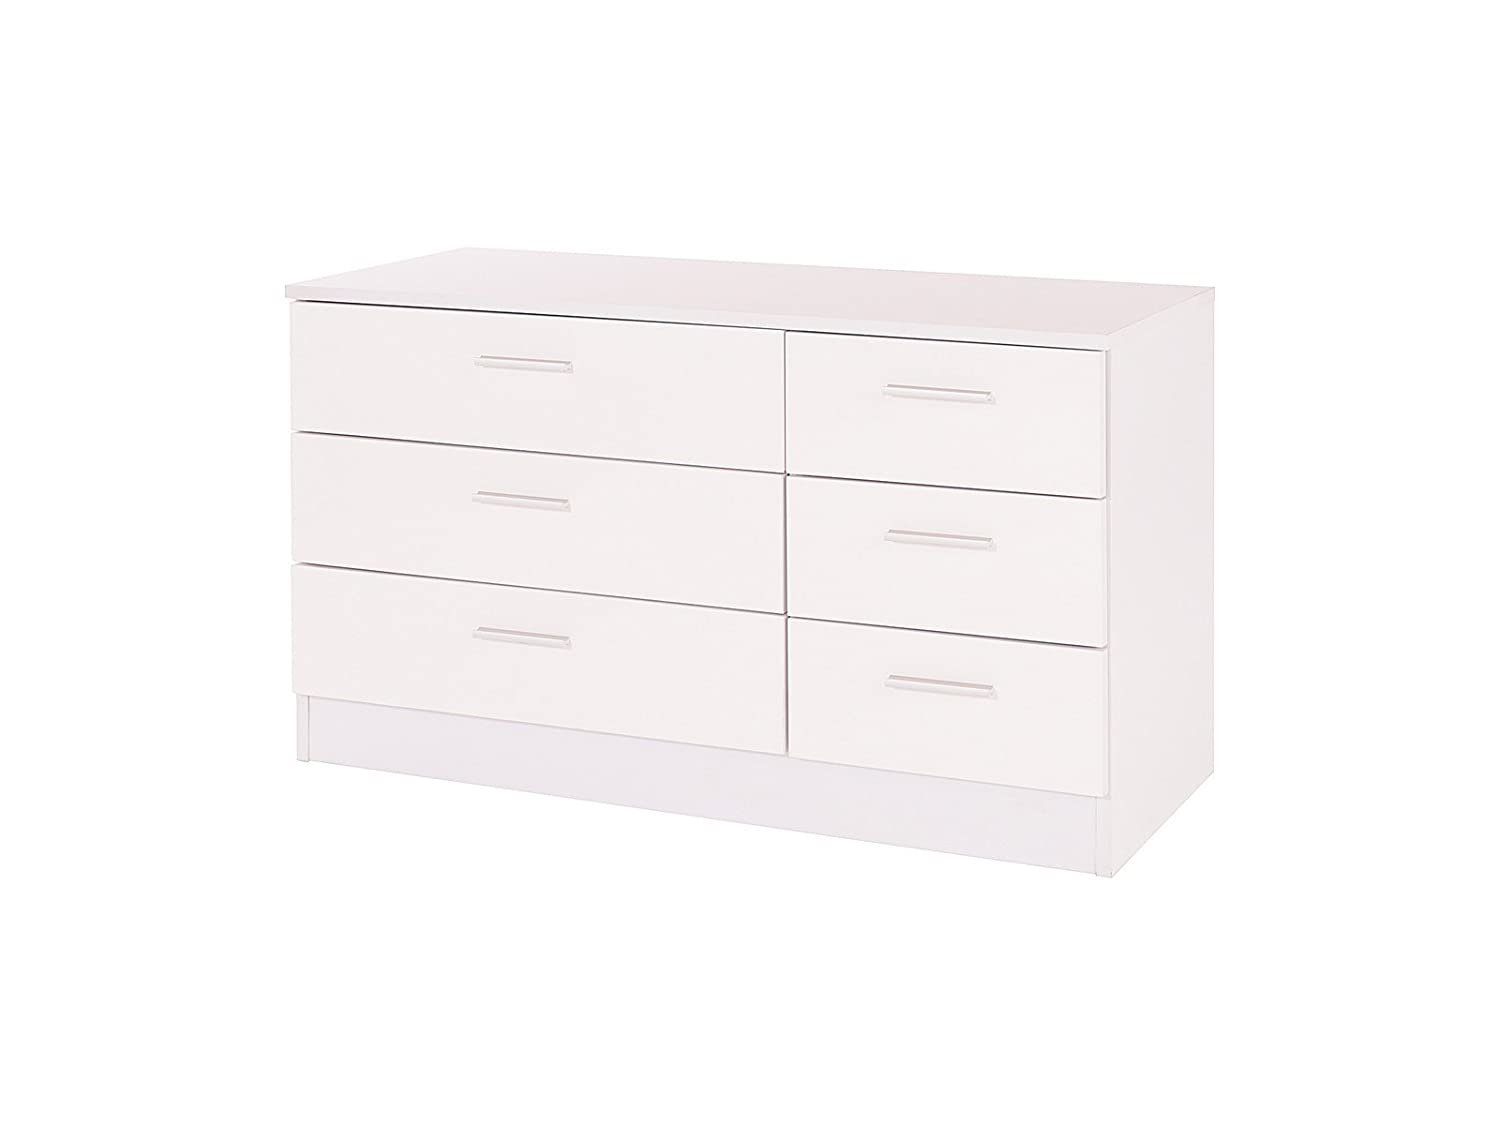 Home Source High Gloss 6 Drawer Chest of Drawers (3+3) - Ottawa Caspian SUPREME Range (Black)